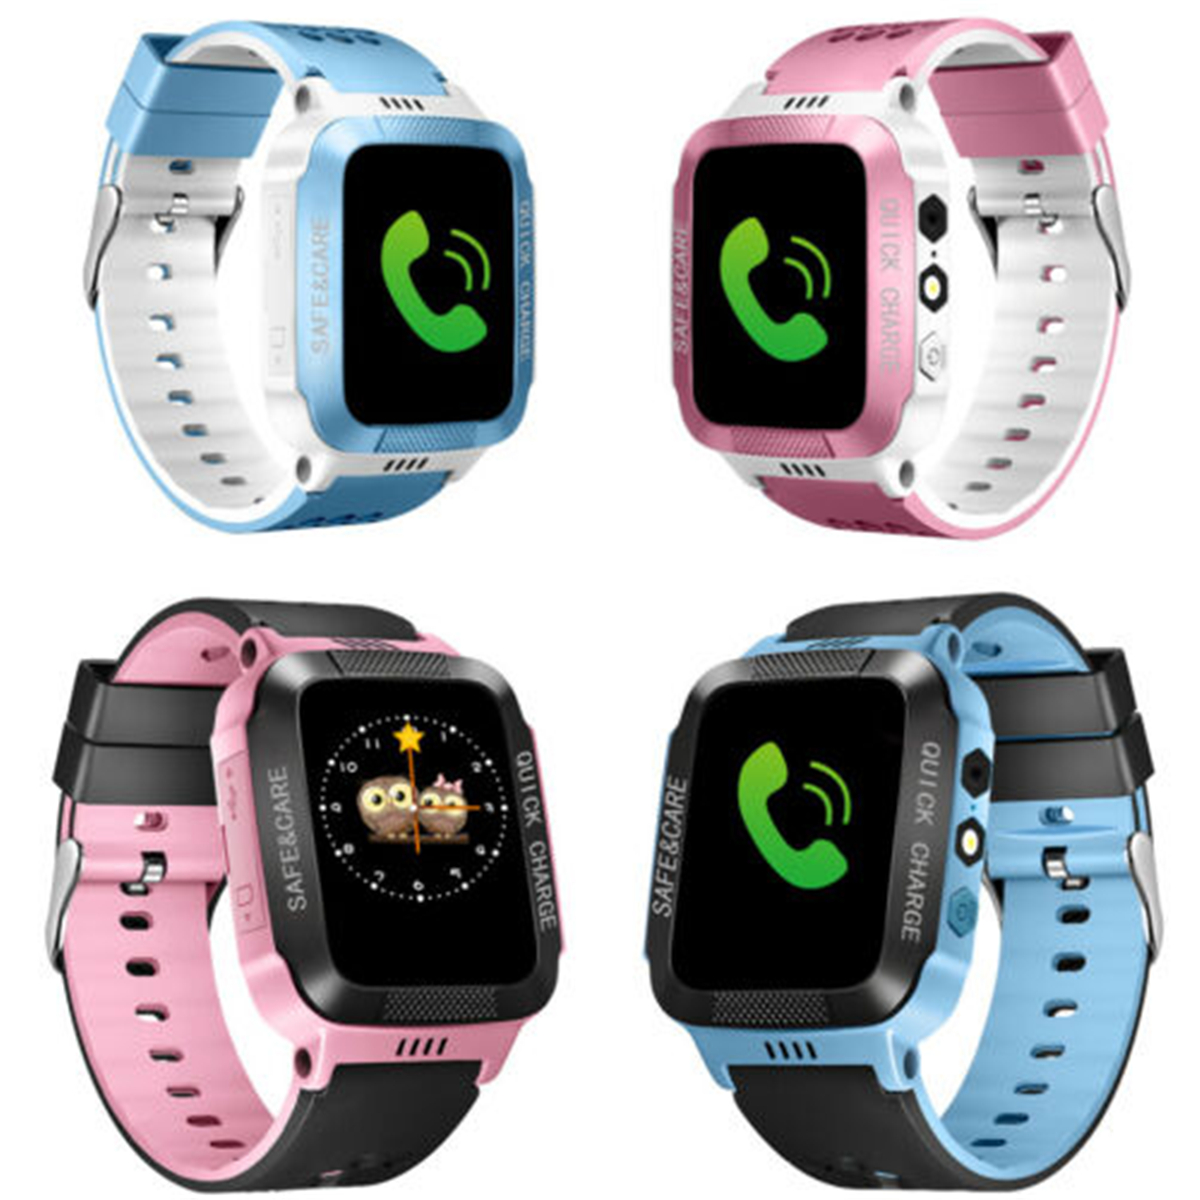 Multifunction Children Kids Digital Smart Watch Touch Screen LBS Position Tracker Voice Monitoring Phone For Kids Safety Protect in Children 39 s Watches from Watches